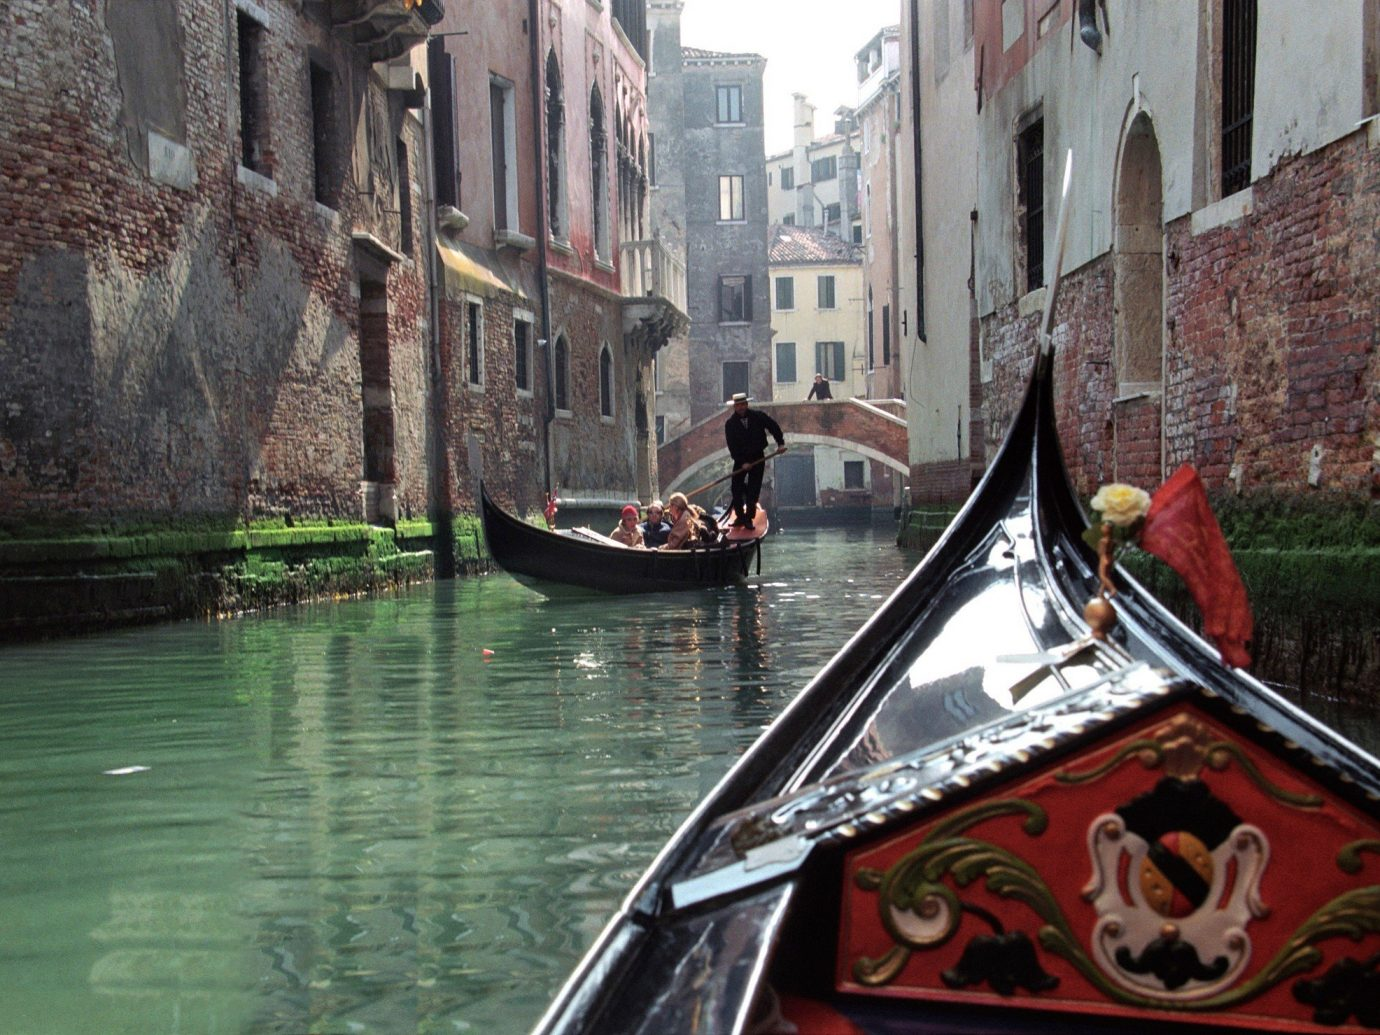 Trip Ideas building gondola outdoor Boat vehicle boating Canal waterway watercraft watercraft rowing stone